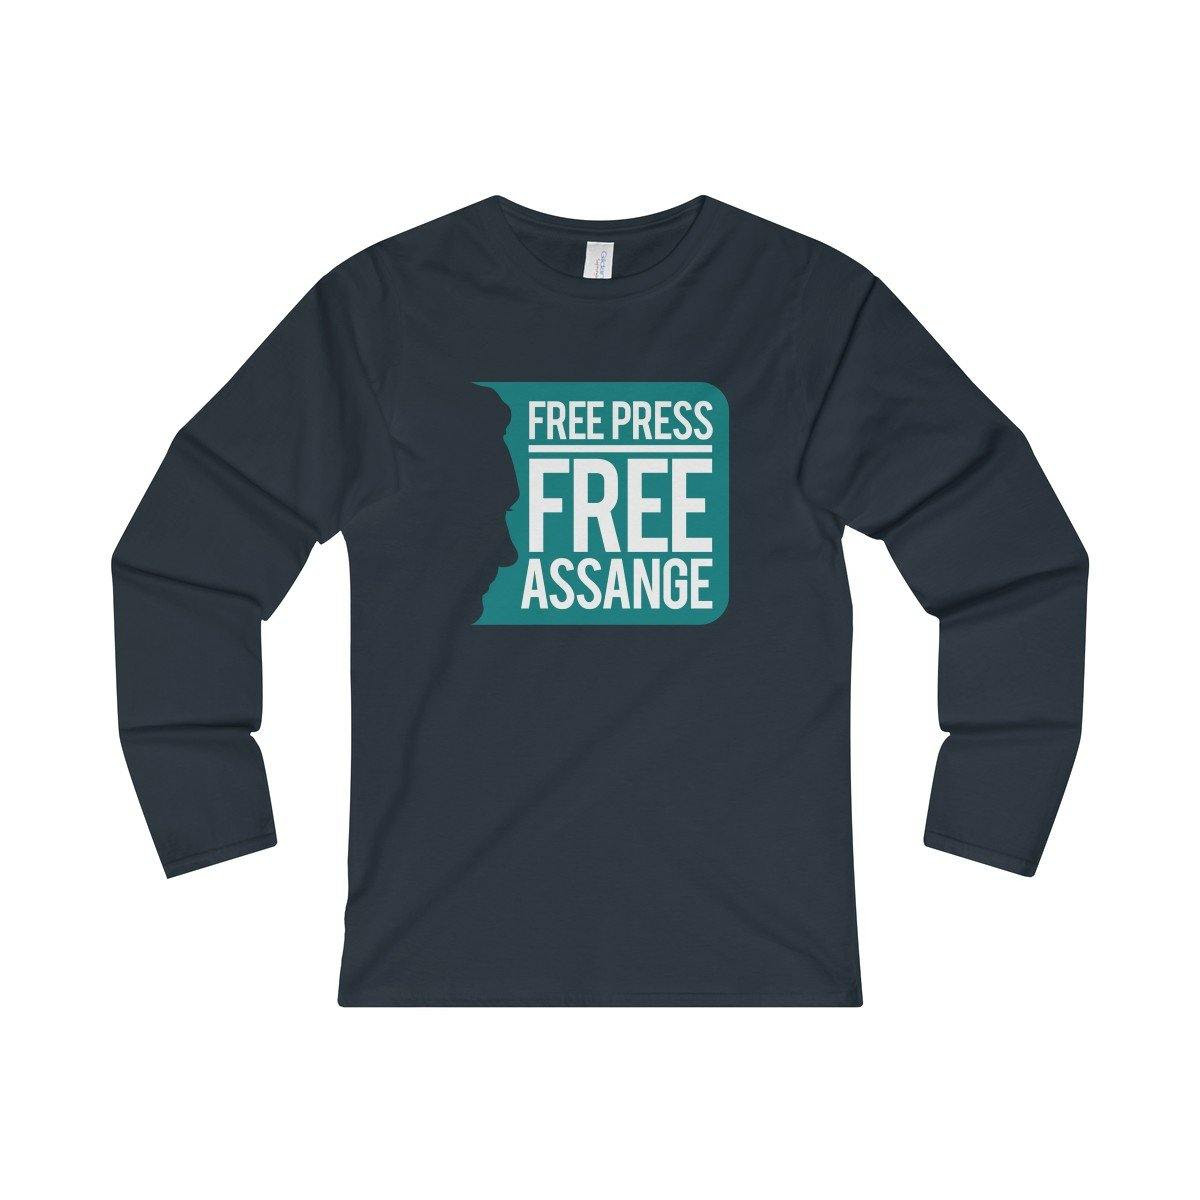 Free Press Free Assange - Women's Fitted Long Sleeve Tee